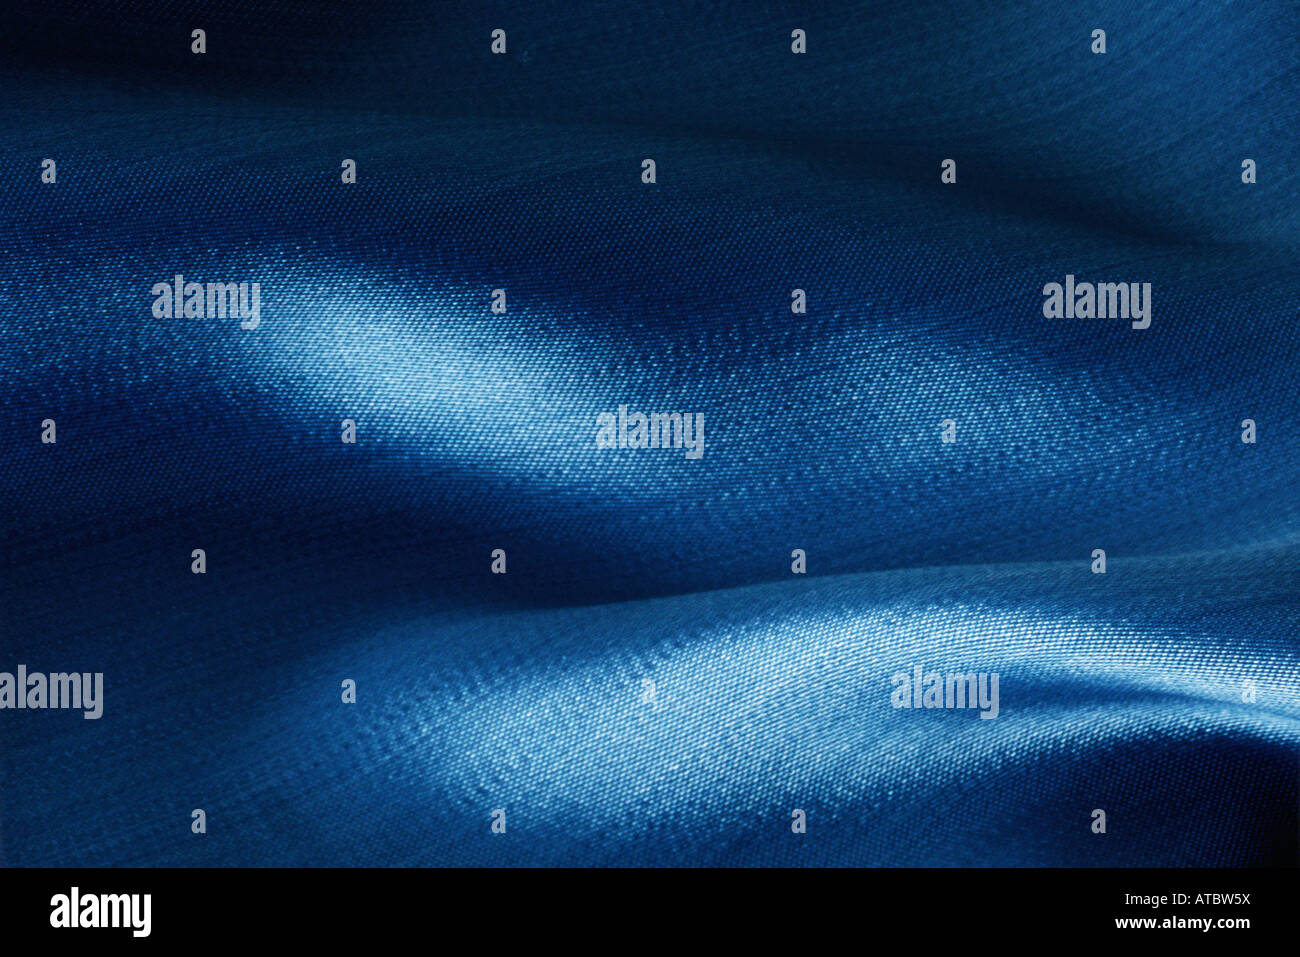 Folds in blue fabric, close-up - Stock Image